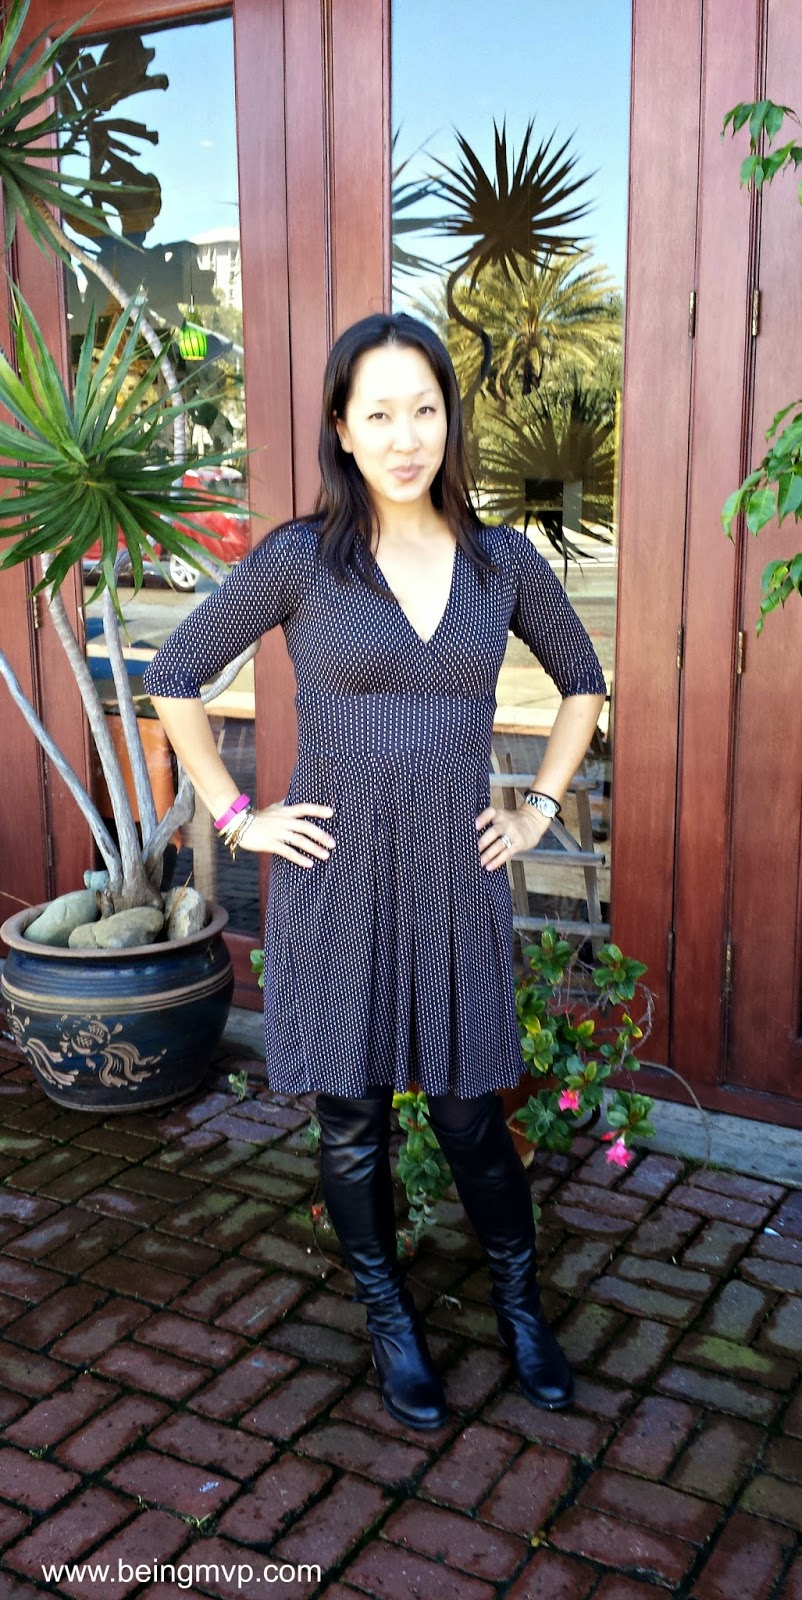 e8d866e152 Karina Dresses has a newsletter you will want to get in your inbox. Each  weekly newsletter has a winner of a new dress selected from the email  subscribers.